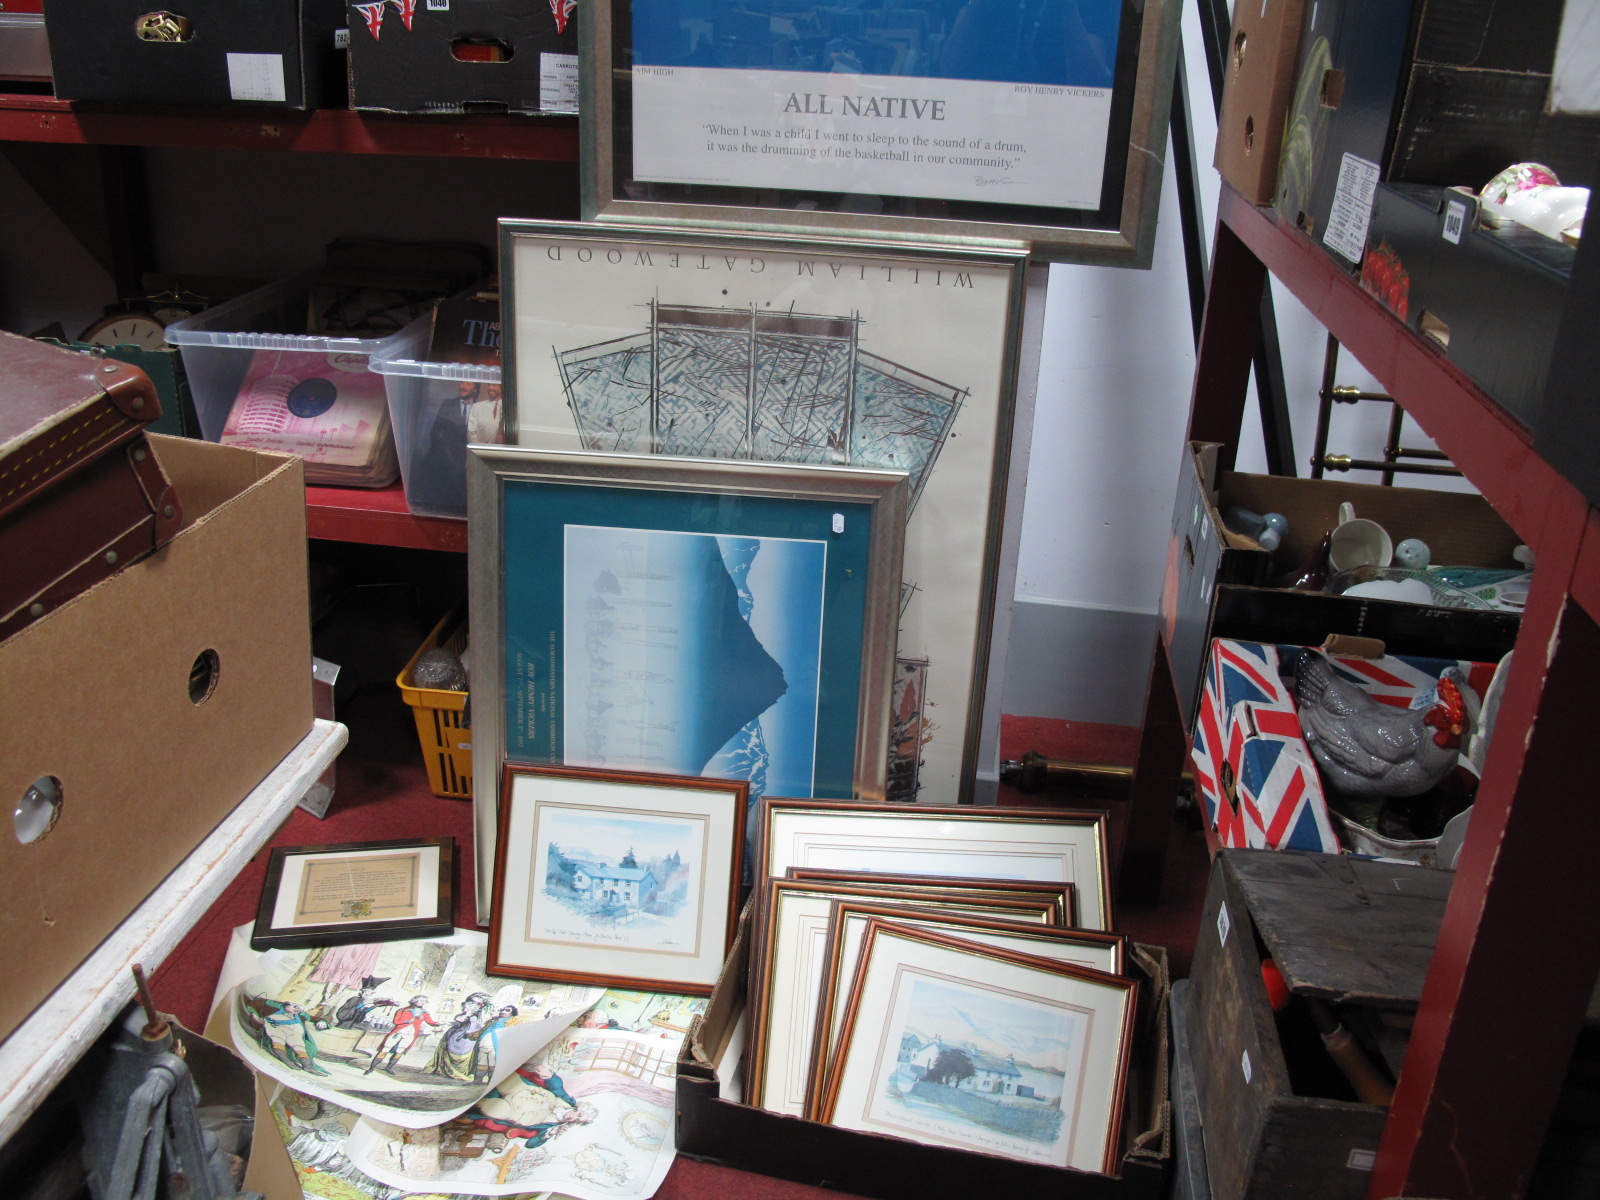 Lot 1047 - Limited Edition Gillvray Coloured Prints, XIX Century coastal etchings, engravings, a 1919